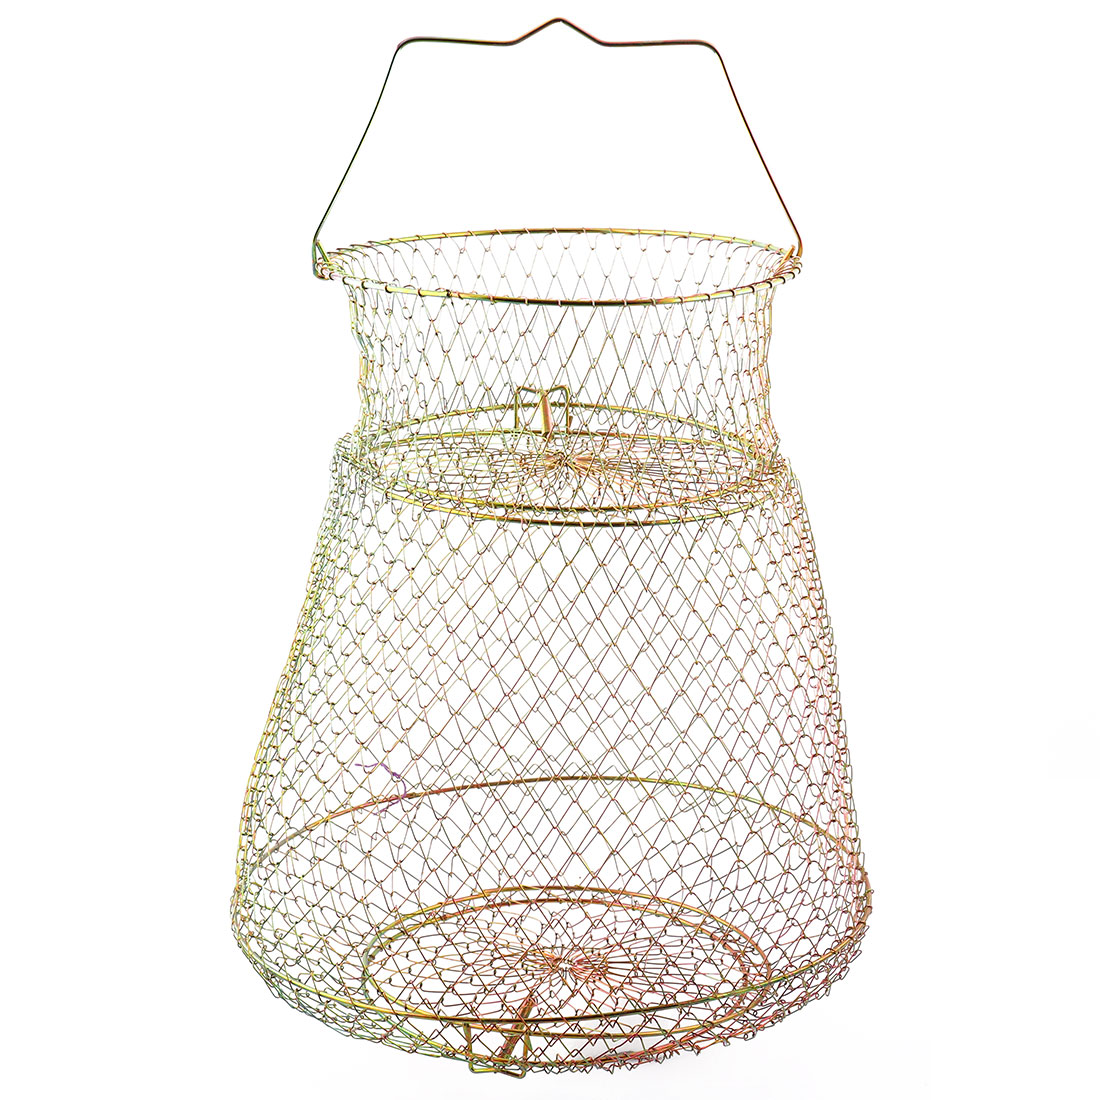 Collapsible Metal Crawfish Lobster Crab Hoop Net